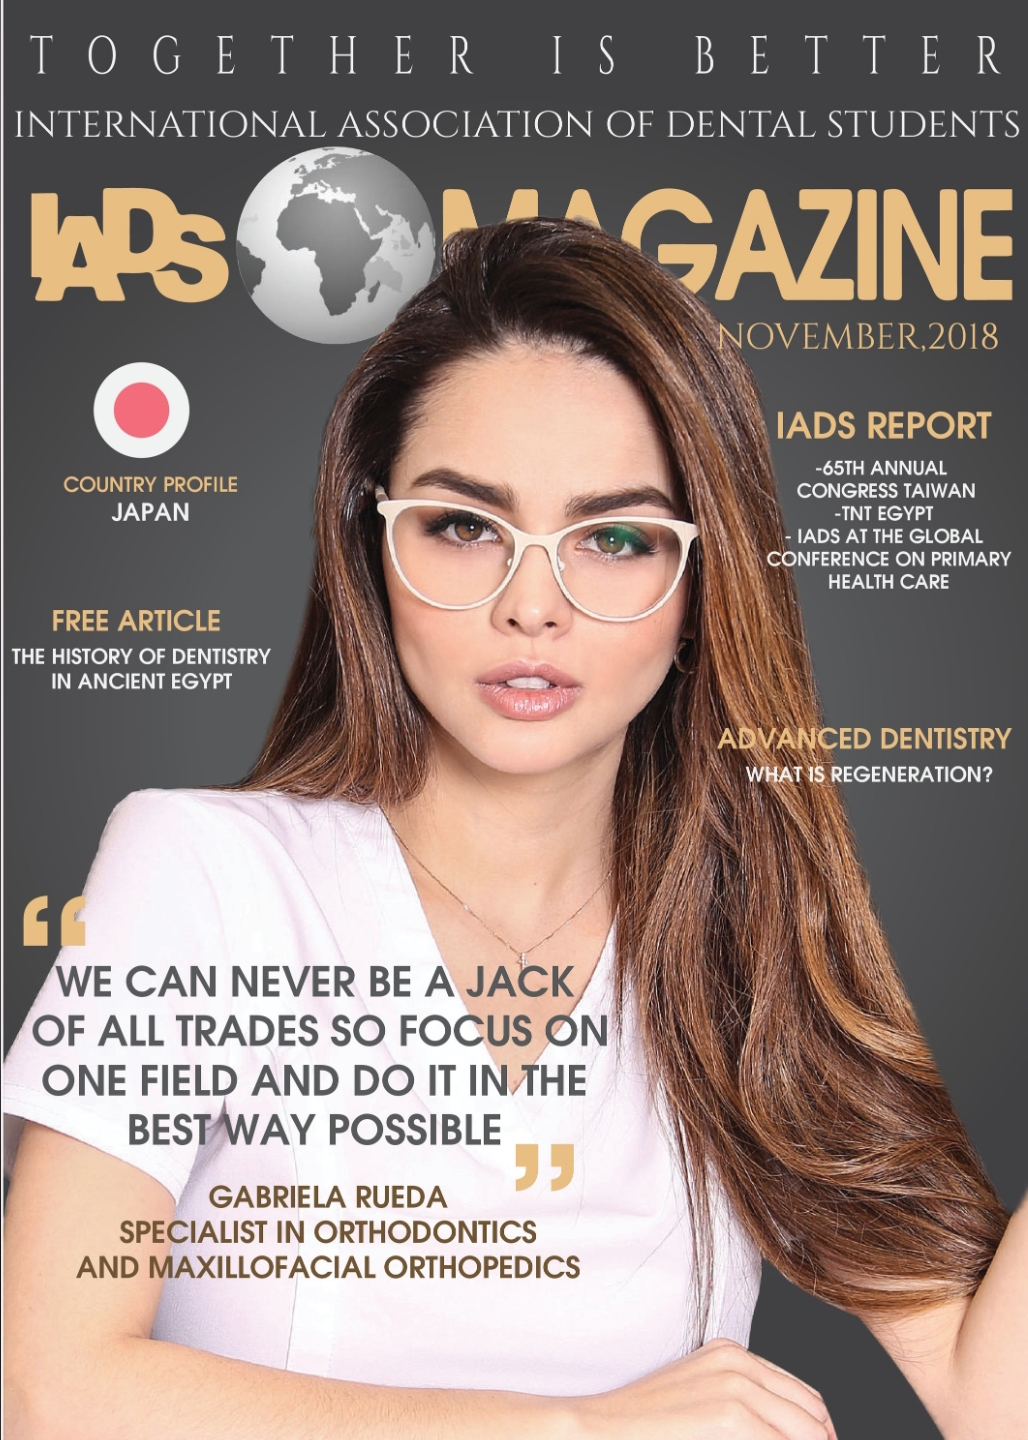 IADS Magazine November 2018 Issue is OUT